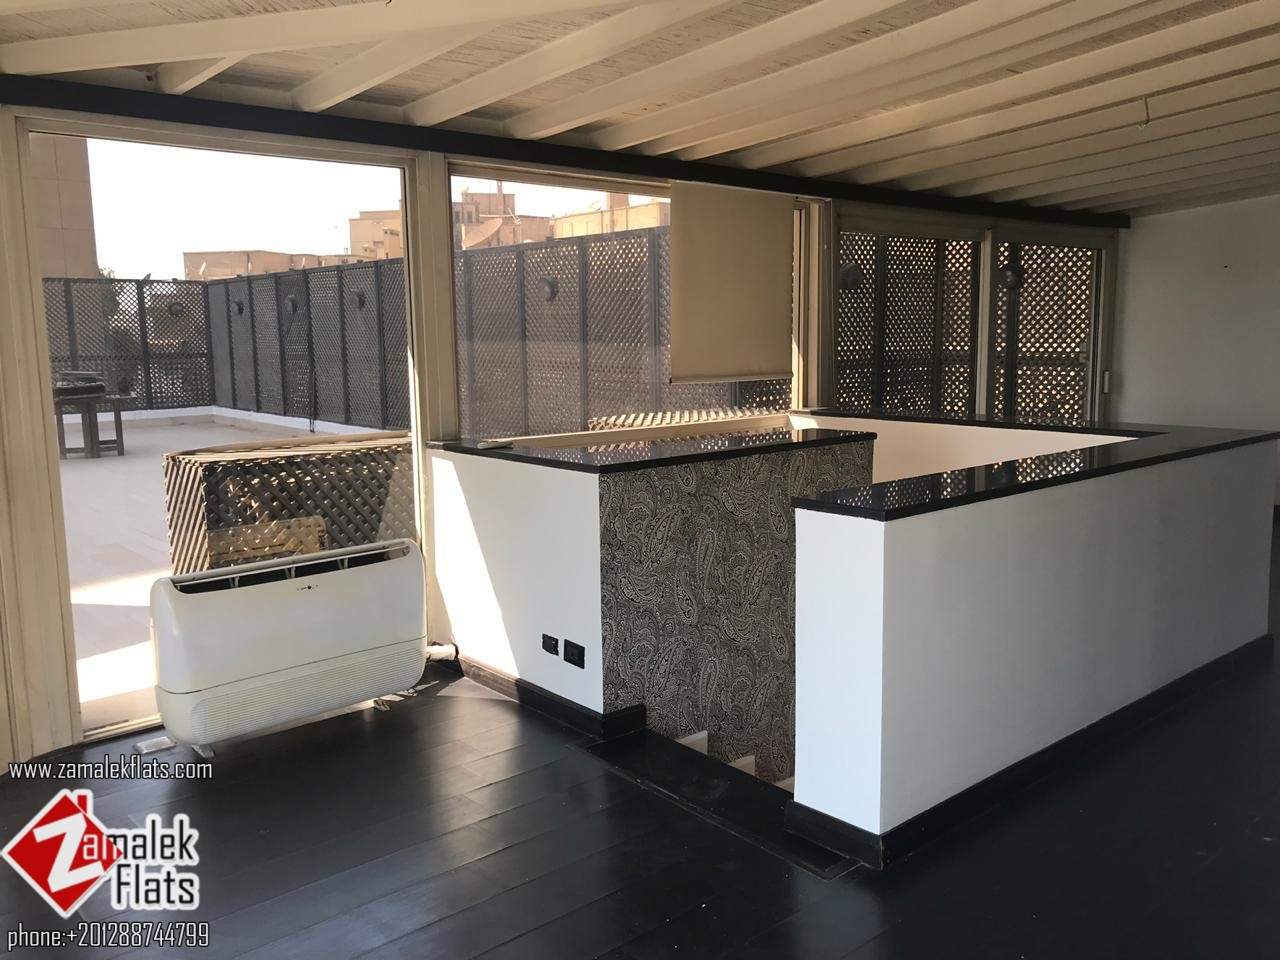 Newly Renovated Penthouse for Rent in South Zamalek